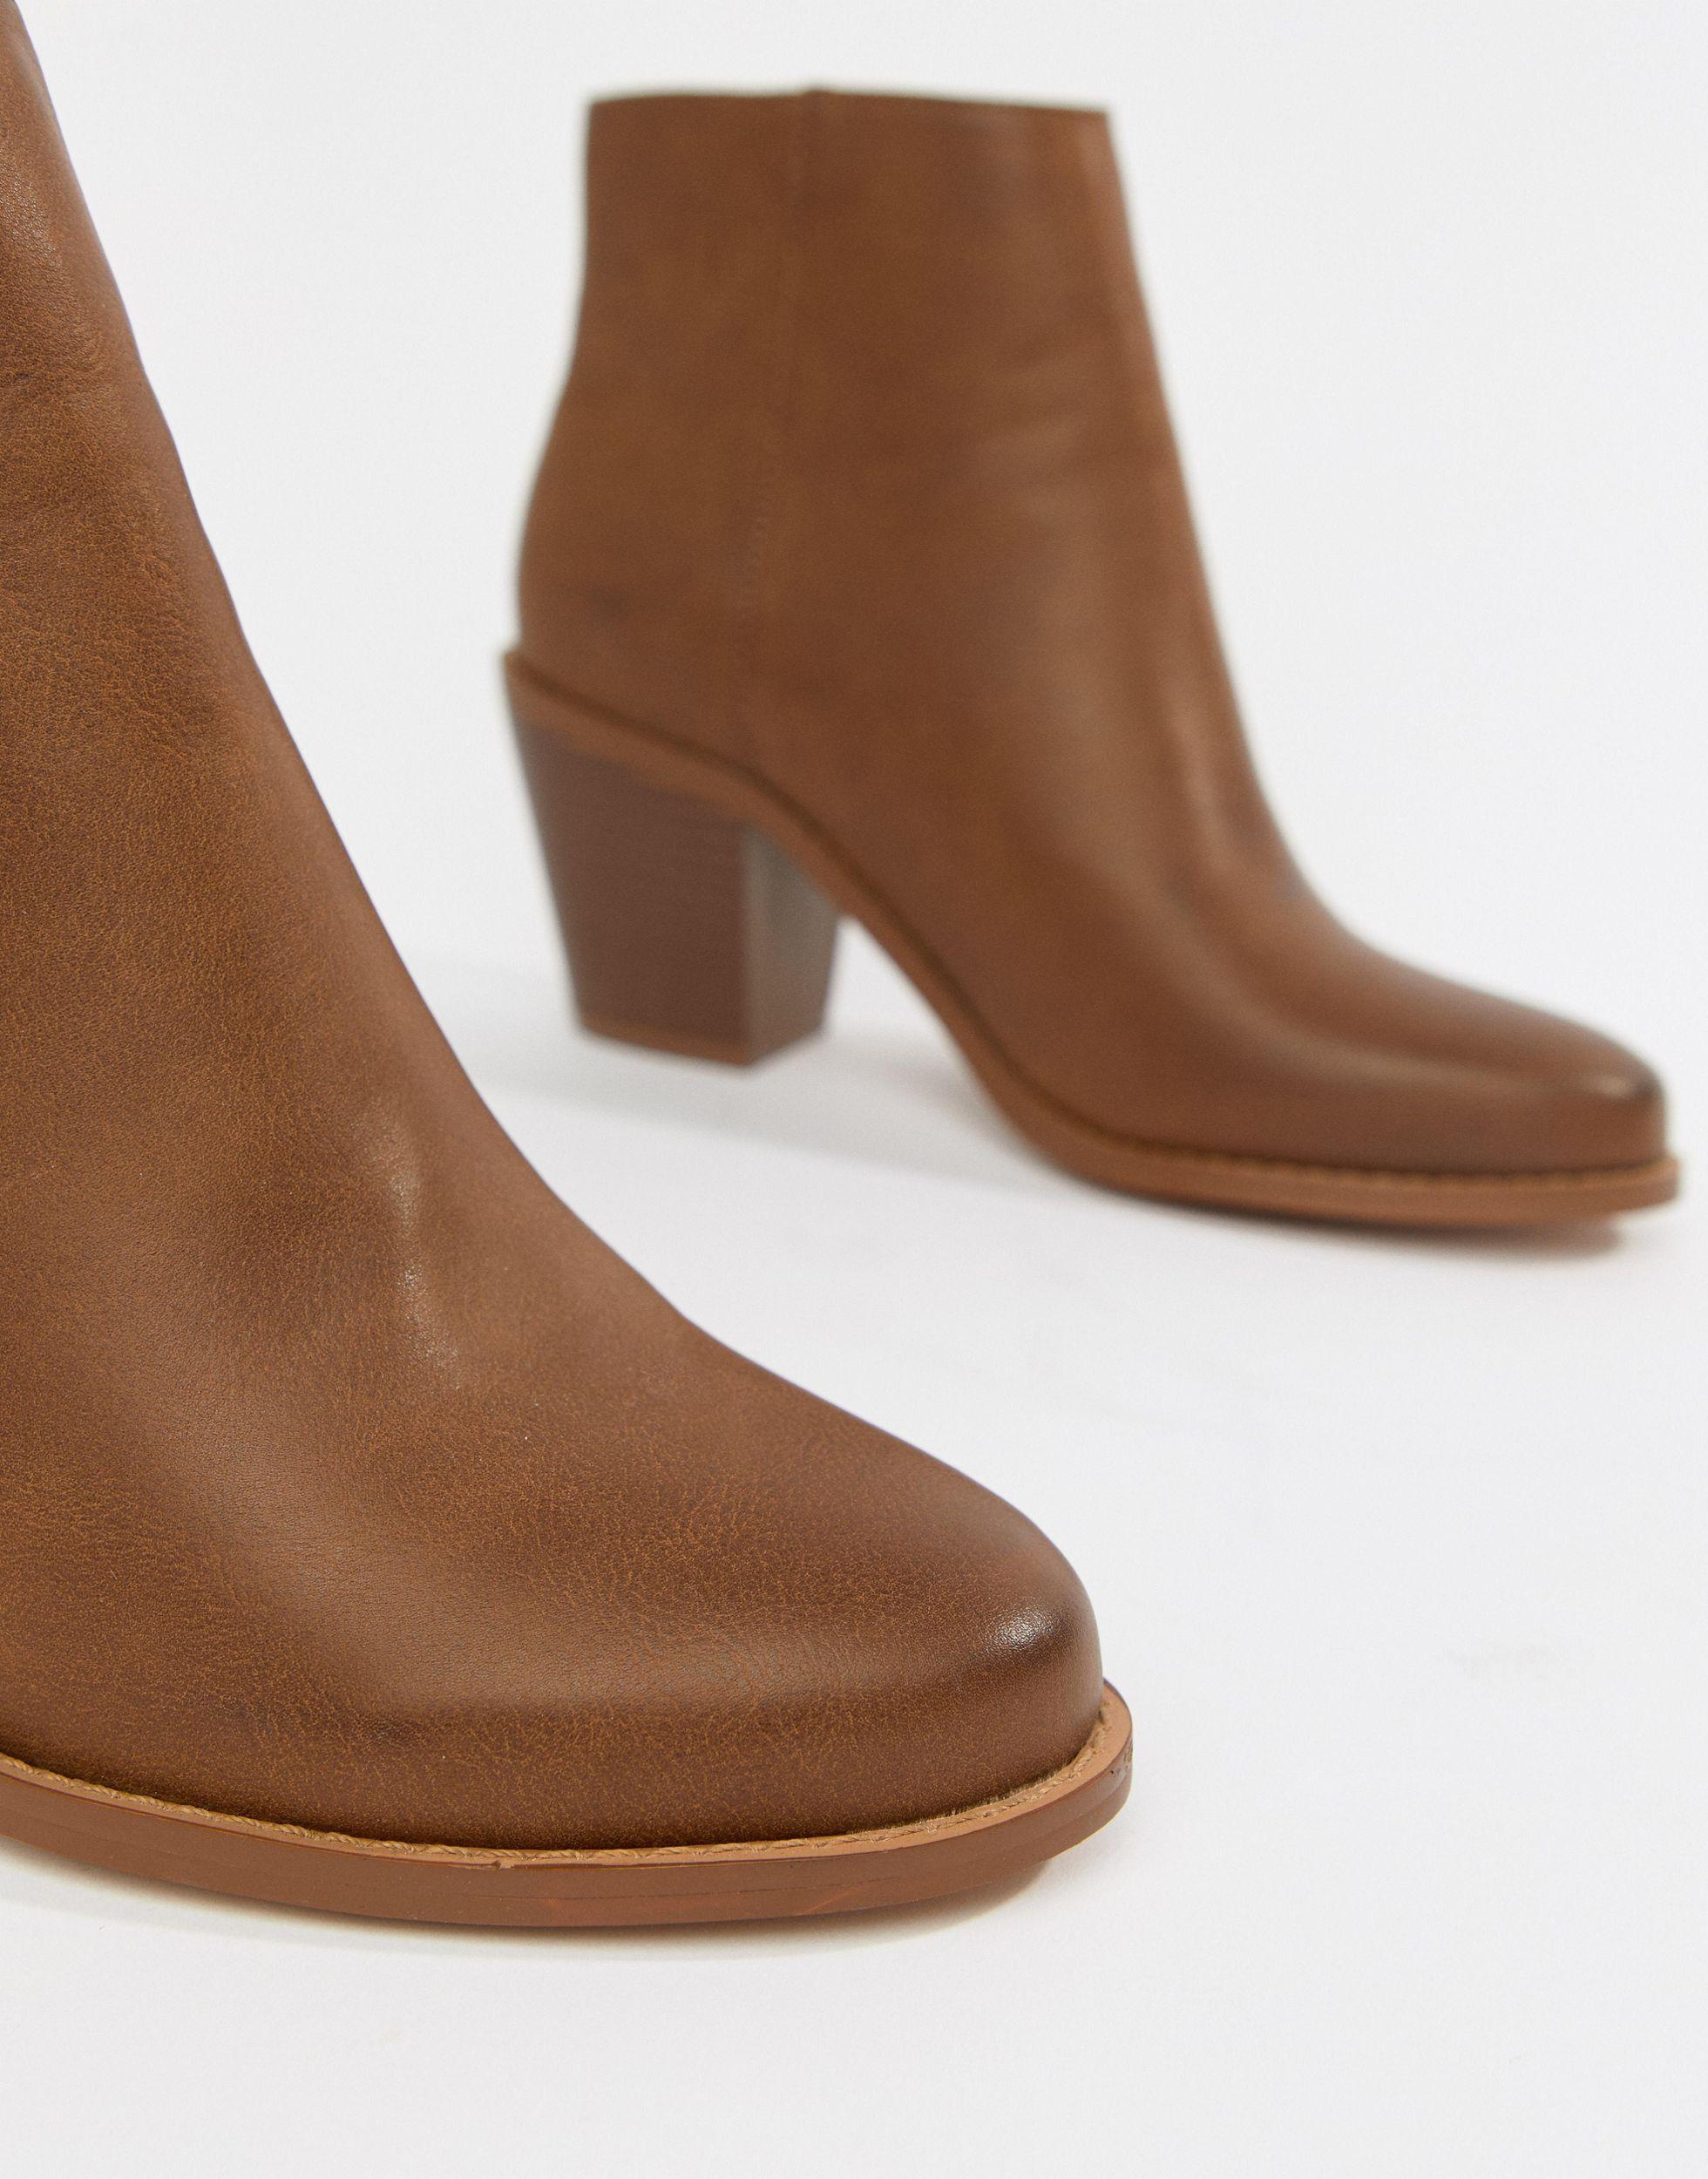 ASOS Denim Remedy Zip Ankle Boots in Tan (Brown)